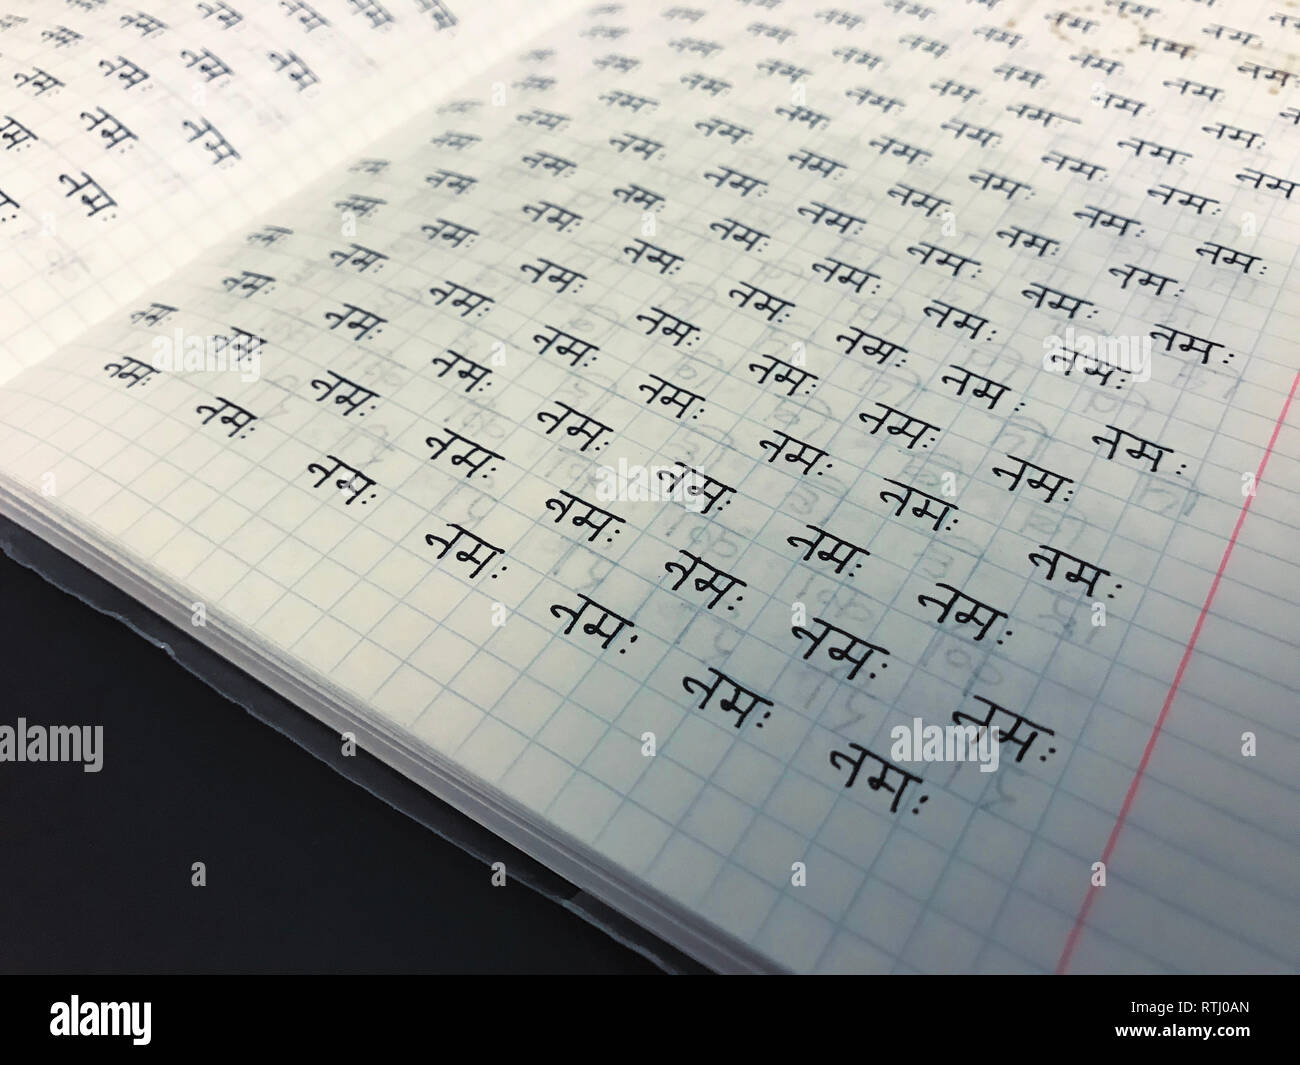 Devanagari Stock Photos & Devanagari Stock Images - Alamy